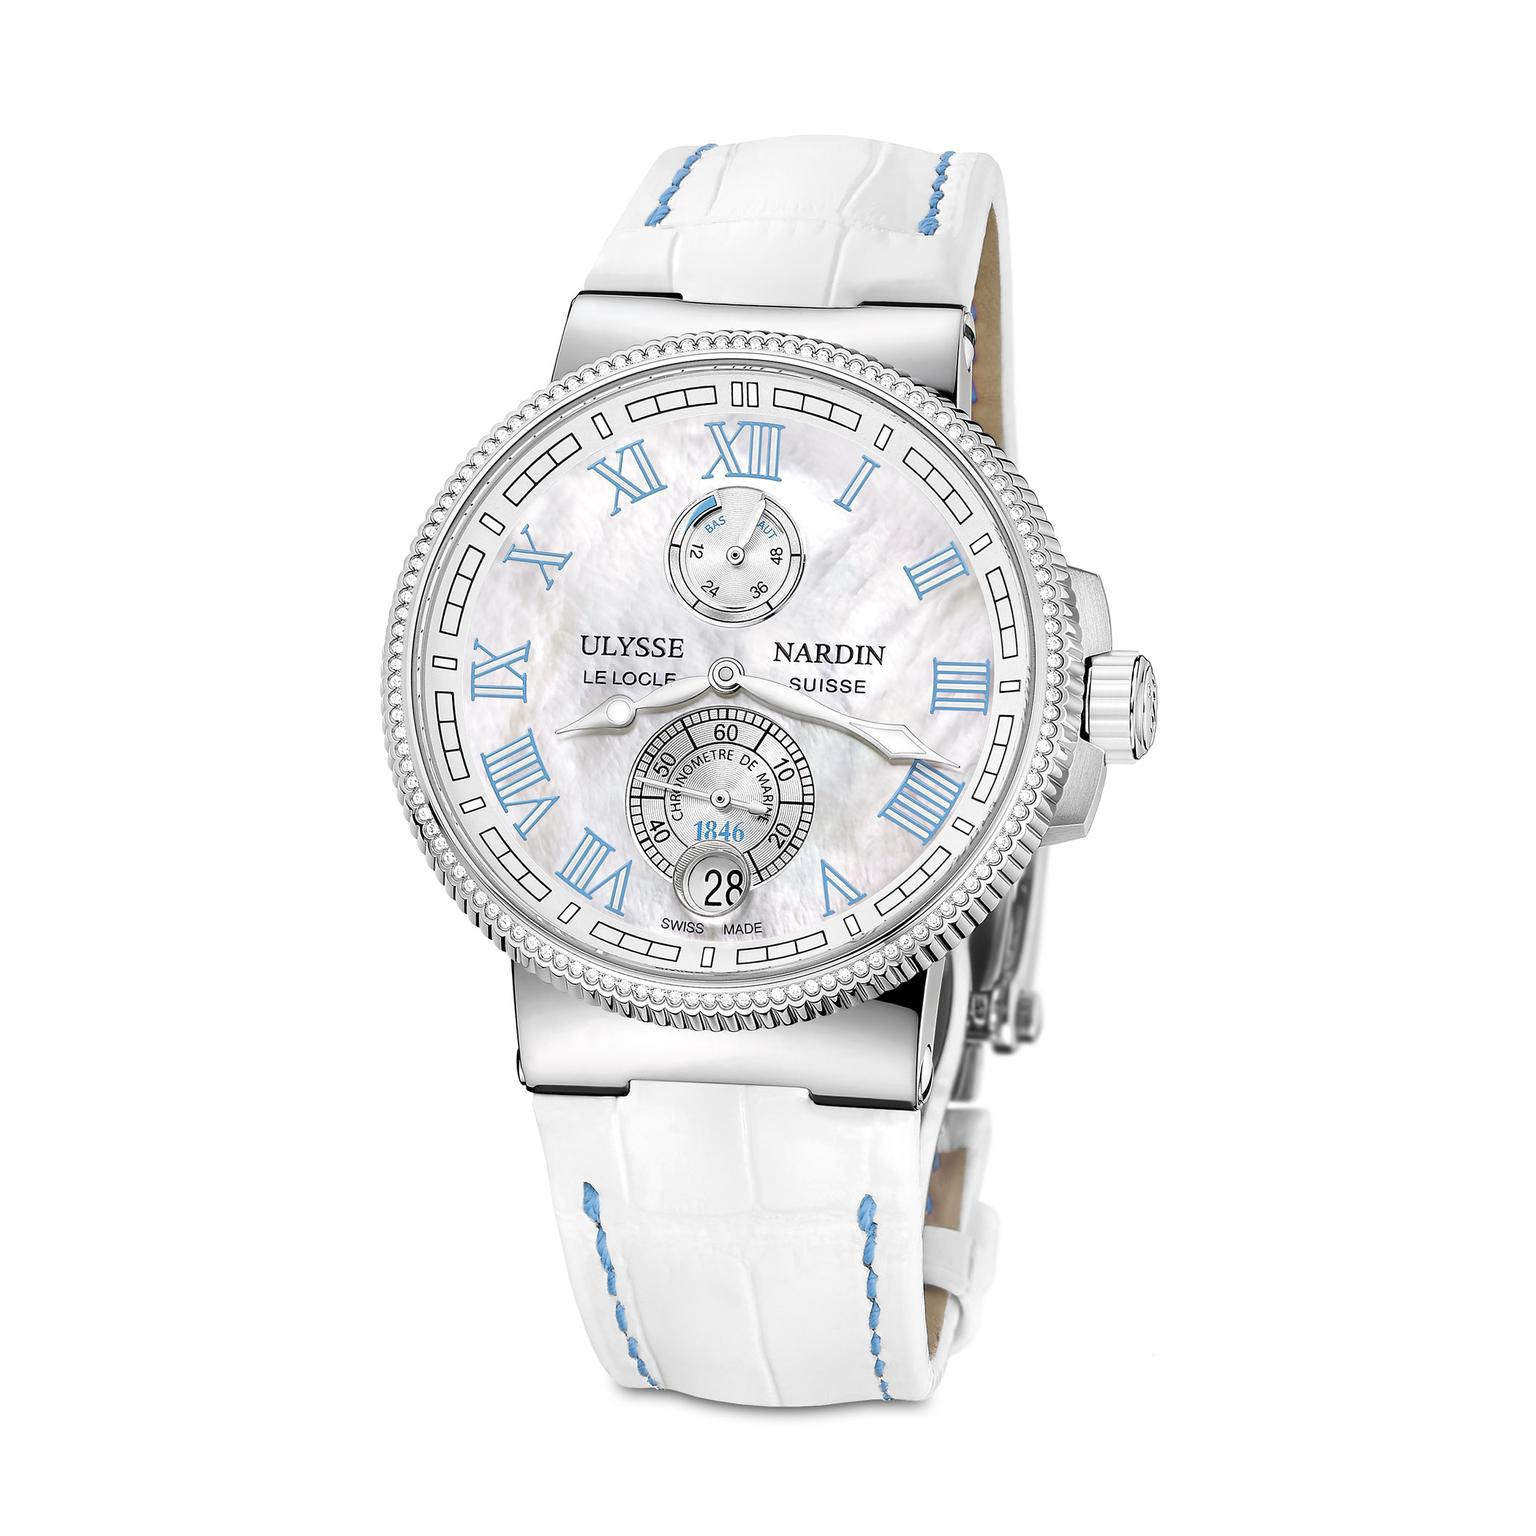 Ulysse Nardin Marine Chronometer 43mm ladies watch in blue_zoom